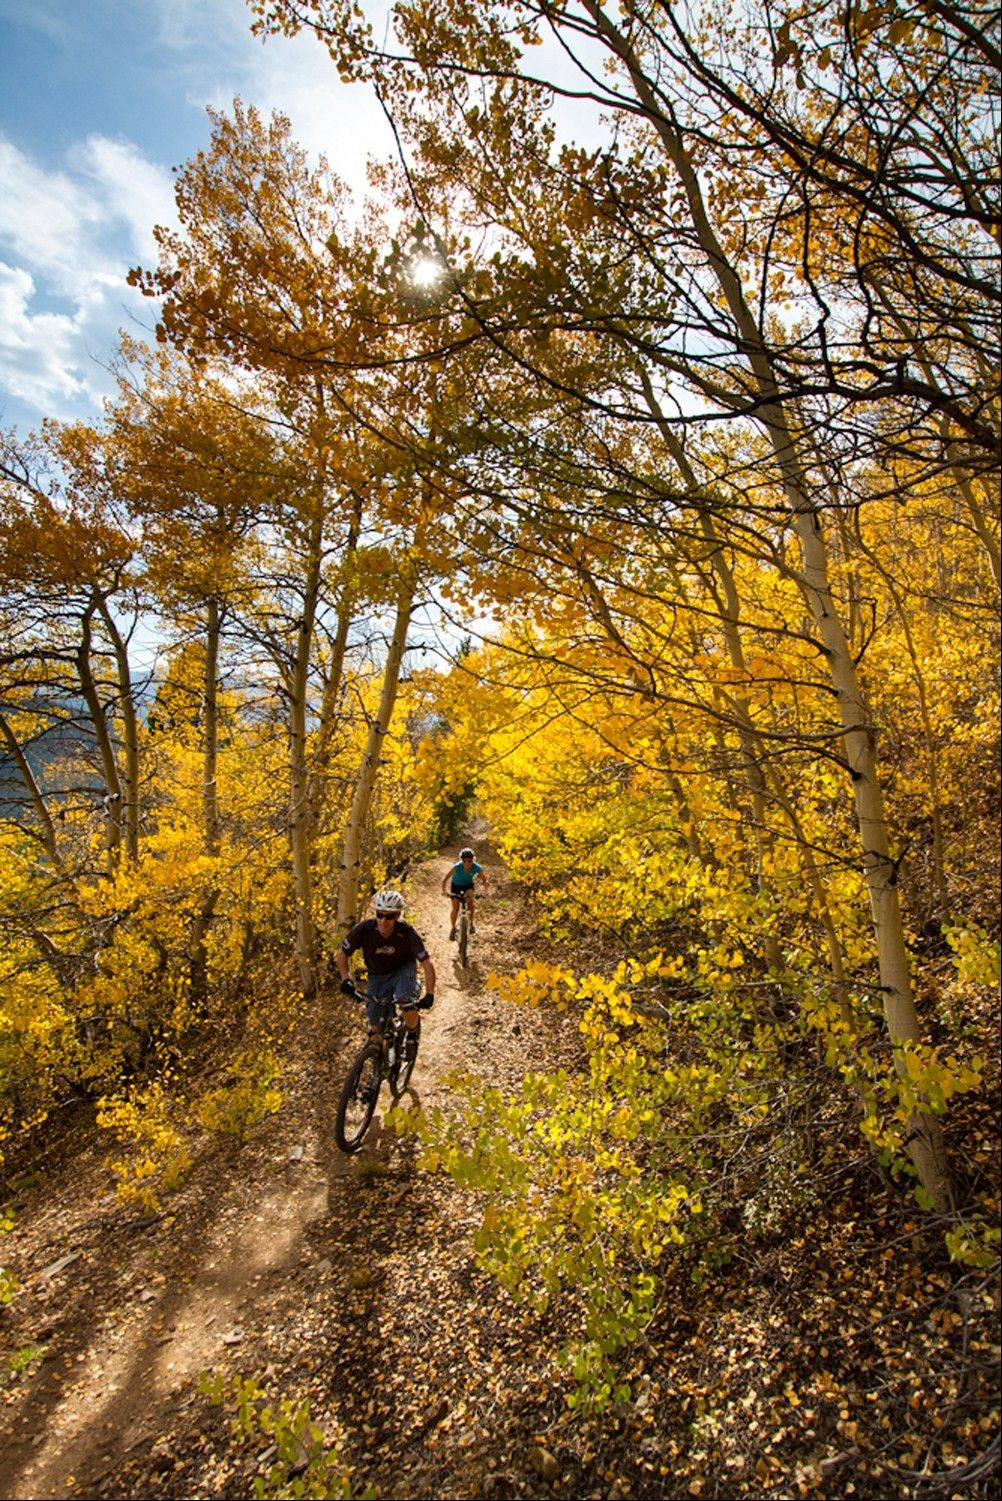 Bikers hit a trail in Breckenridge, Colo.